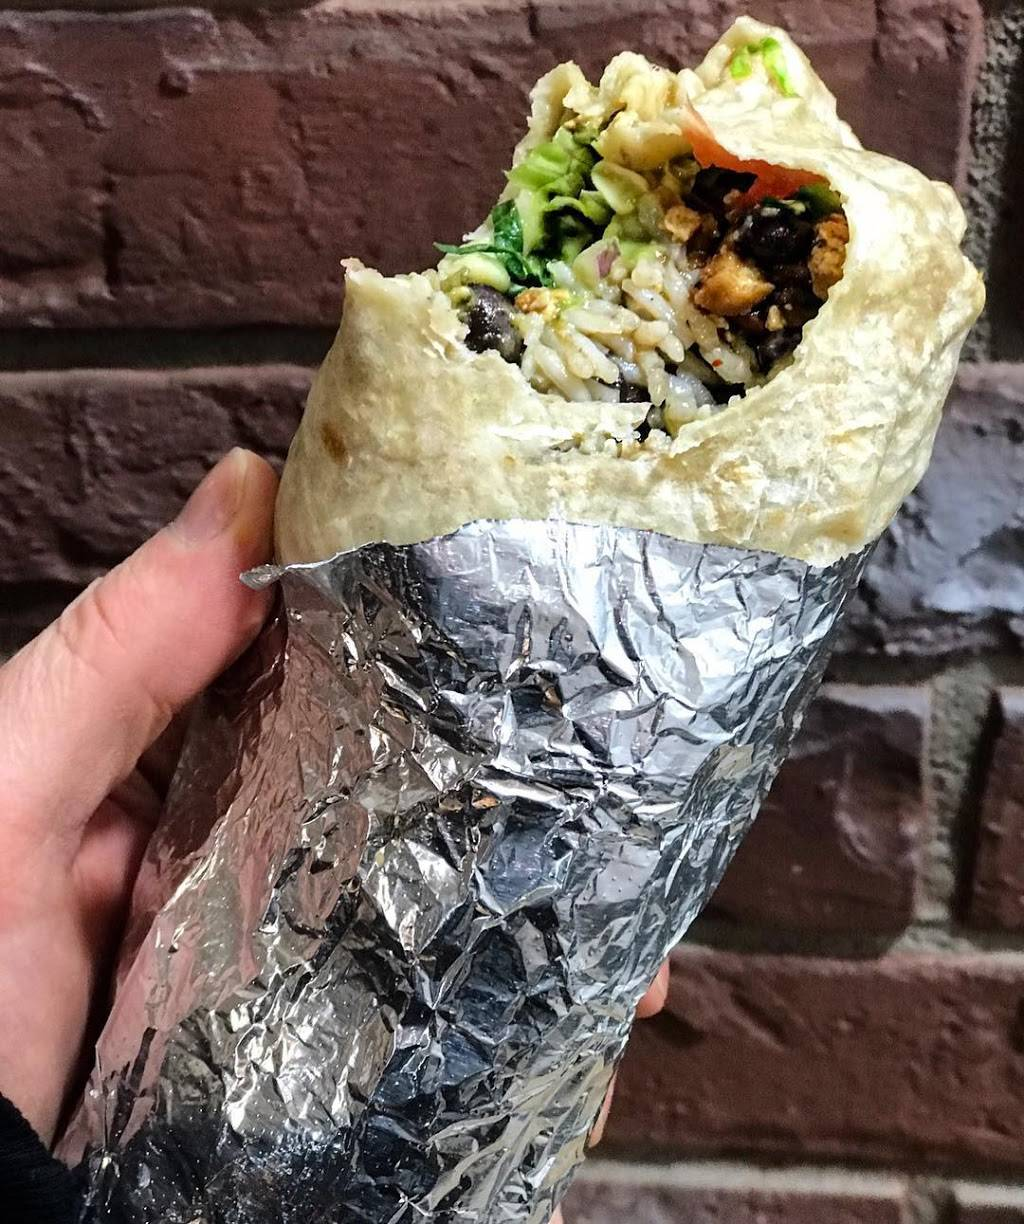 Chipotle Mexican Grill | restaurant | 2298 Broadway, New York, NY 10024, USA | 6464126237 OR +1 646-412-6237